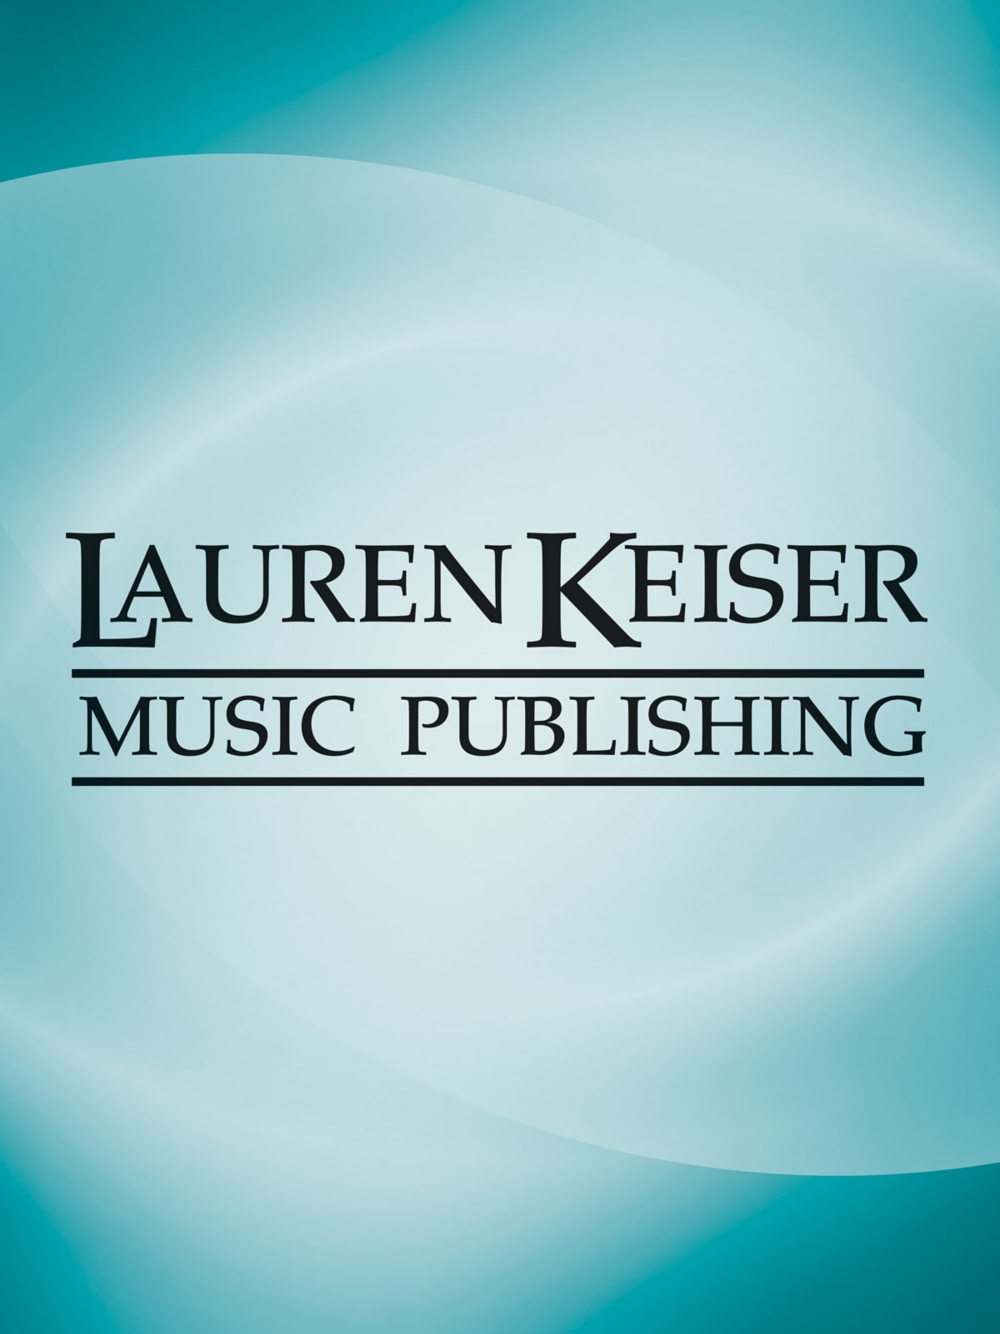 Lauren Keiser Music Publishing Adagio K. 580A for English Horn, Two Violins and Cello LKM... by Lauren Keiser Music Publishing